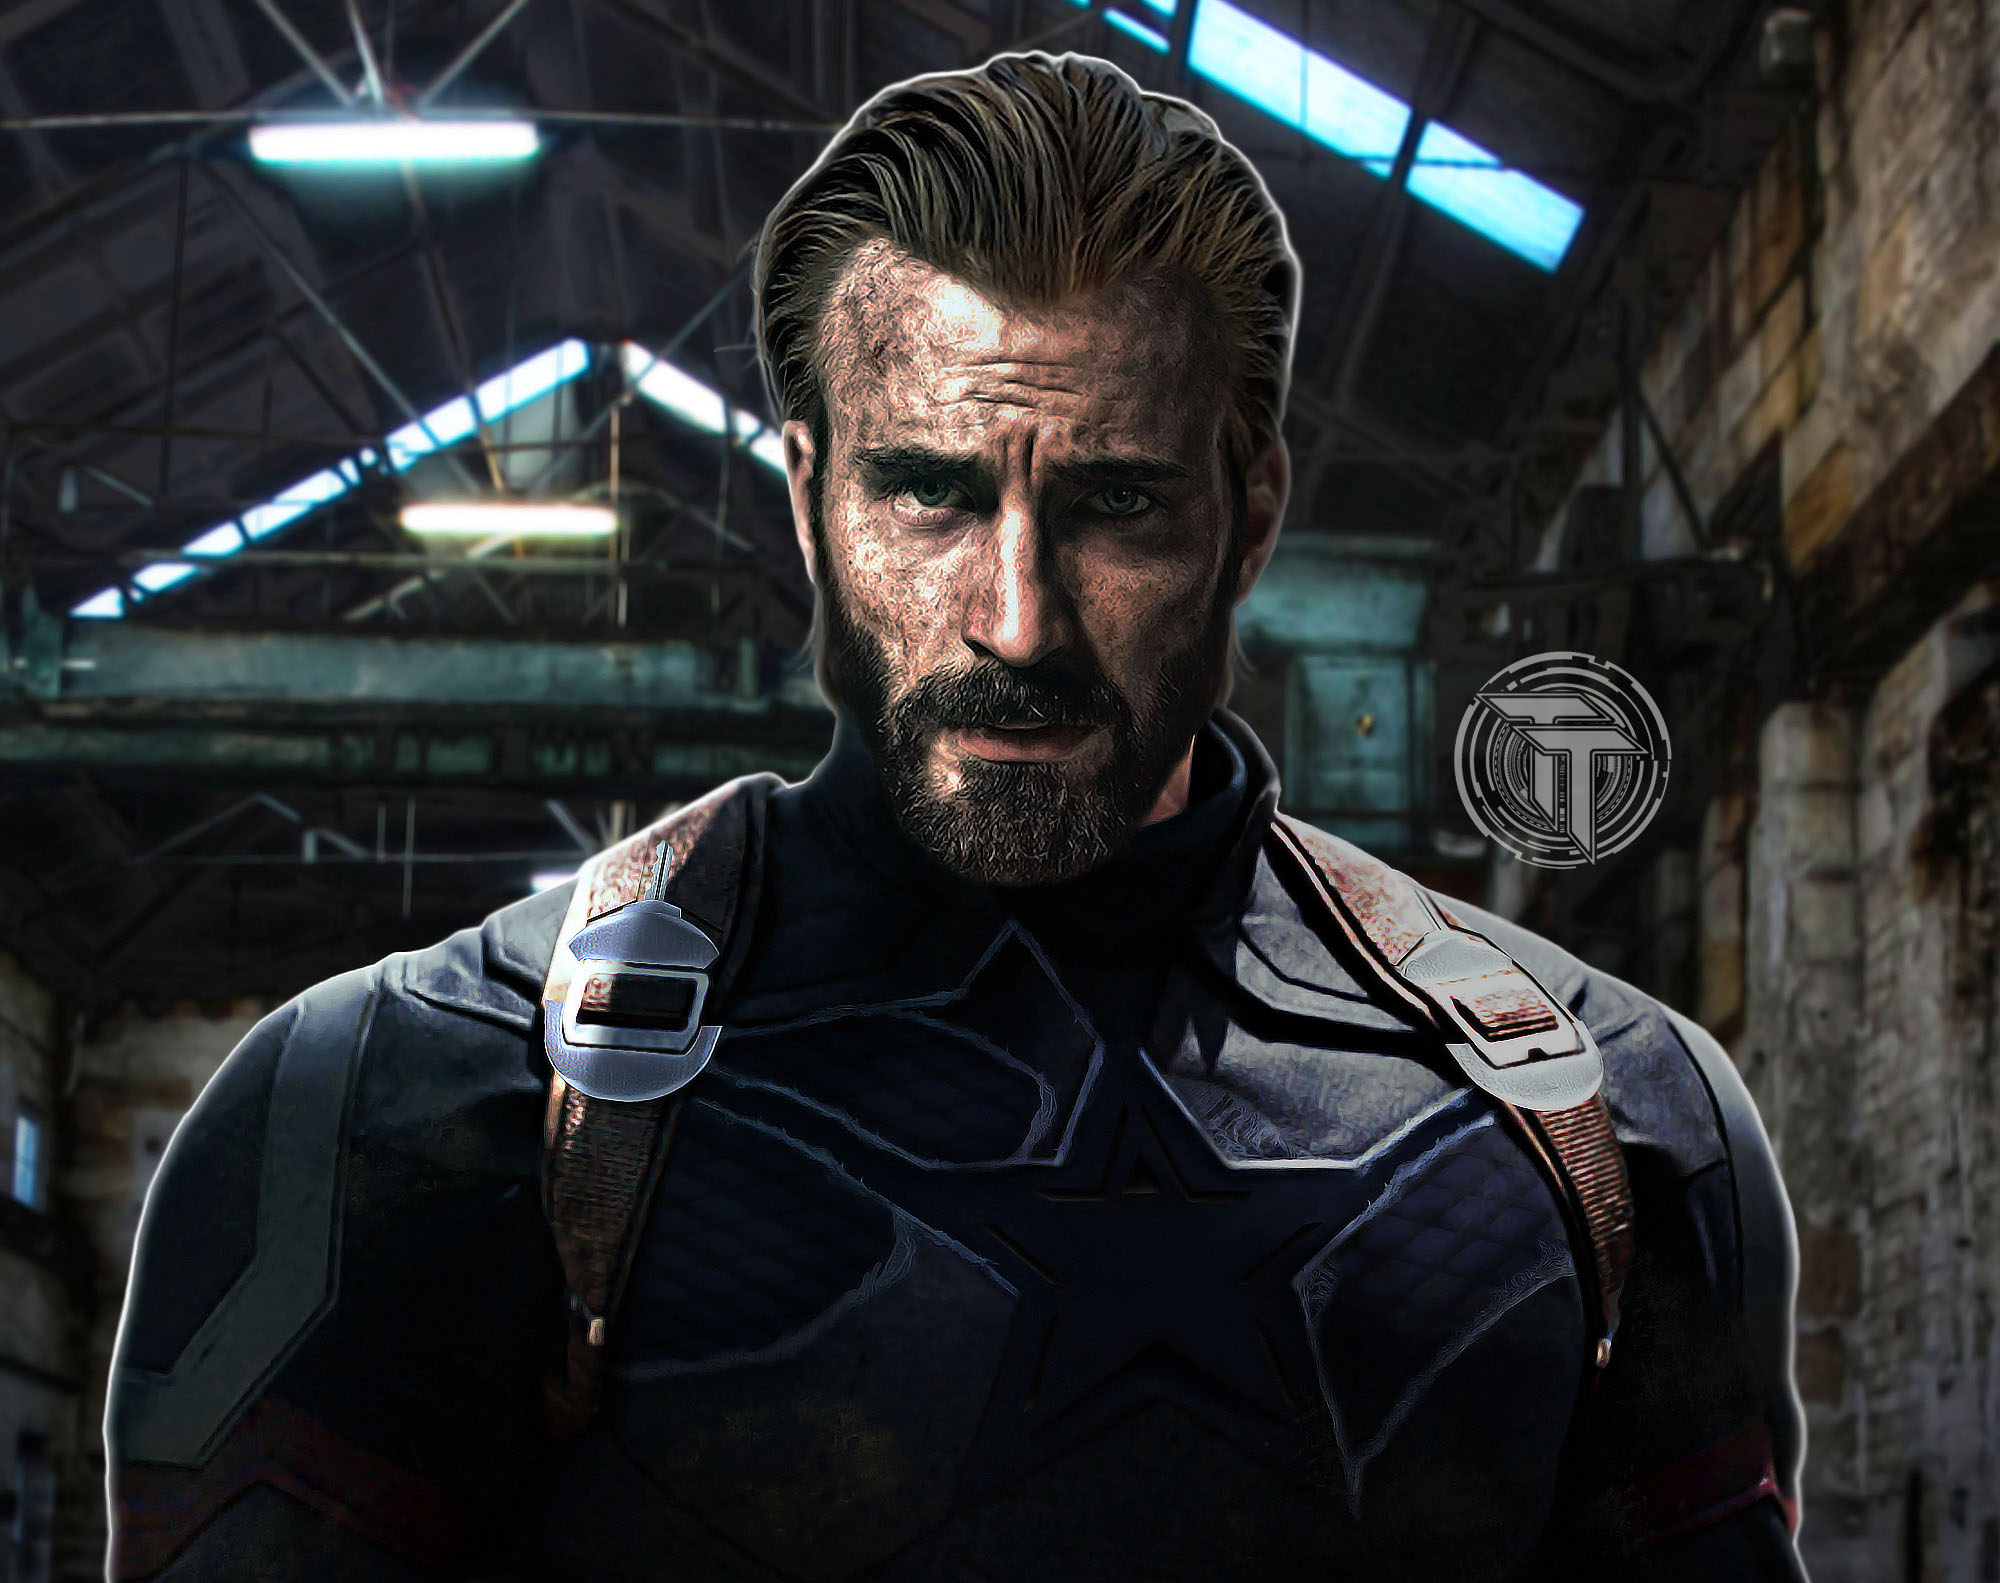 Captain america with beard in avengers infinity war 2018 - Captain america hd images download ...